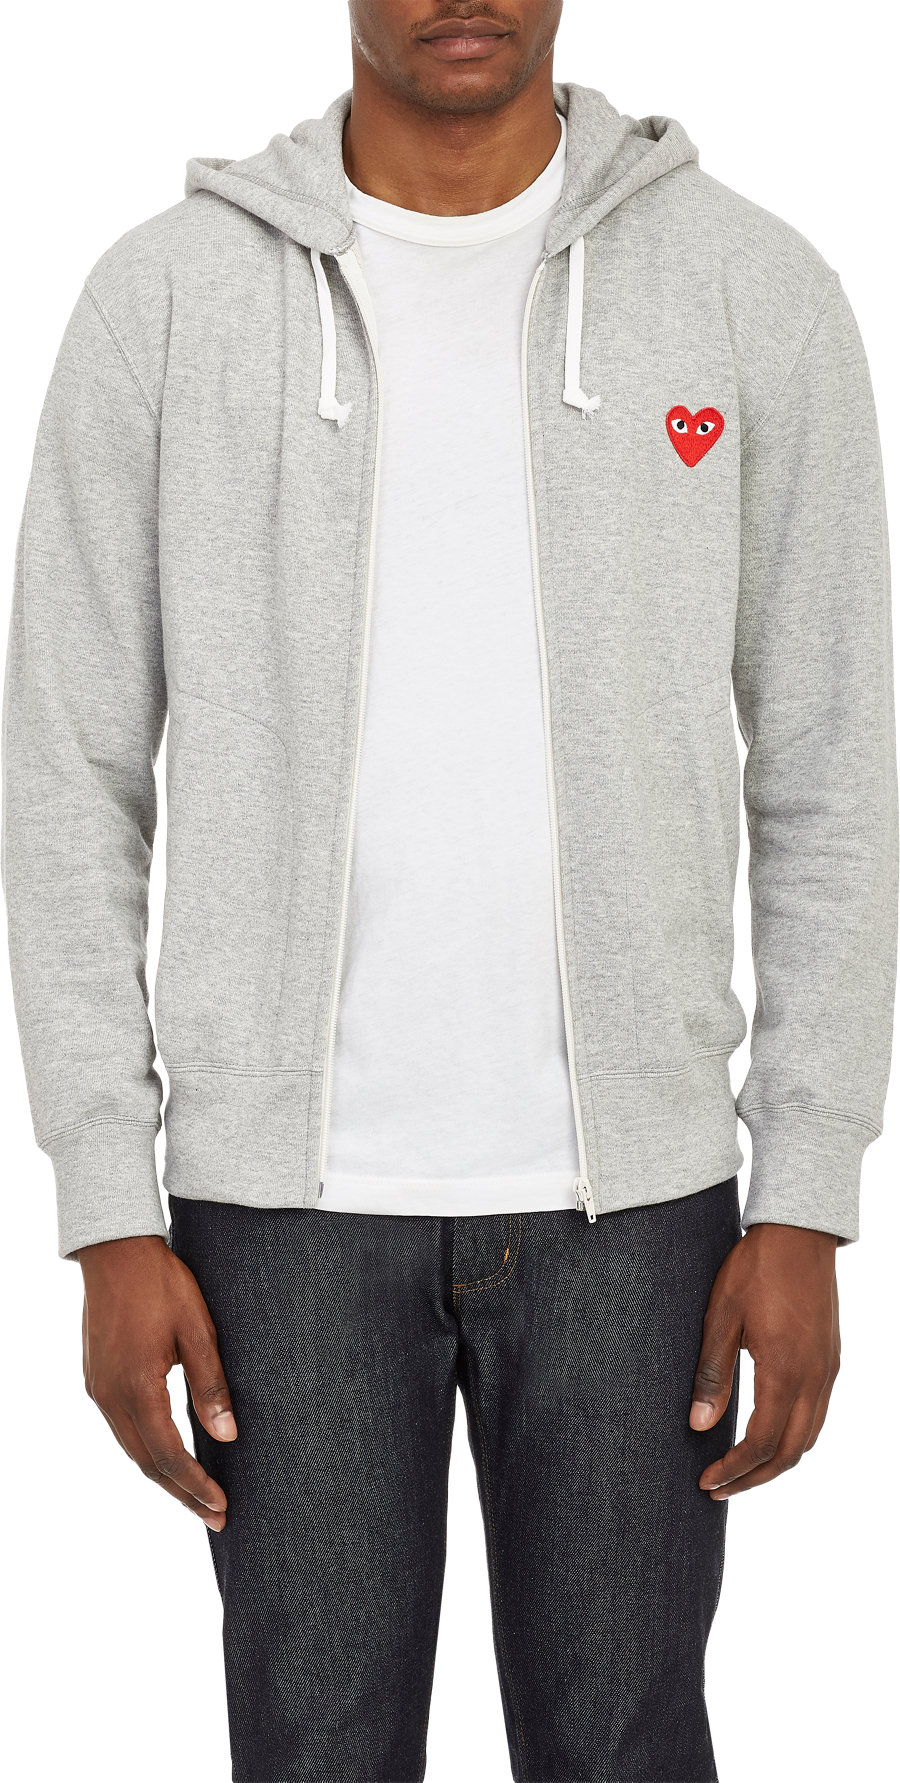 Comme des Garçons Play hoodie at Barneys New York